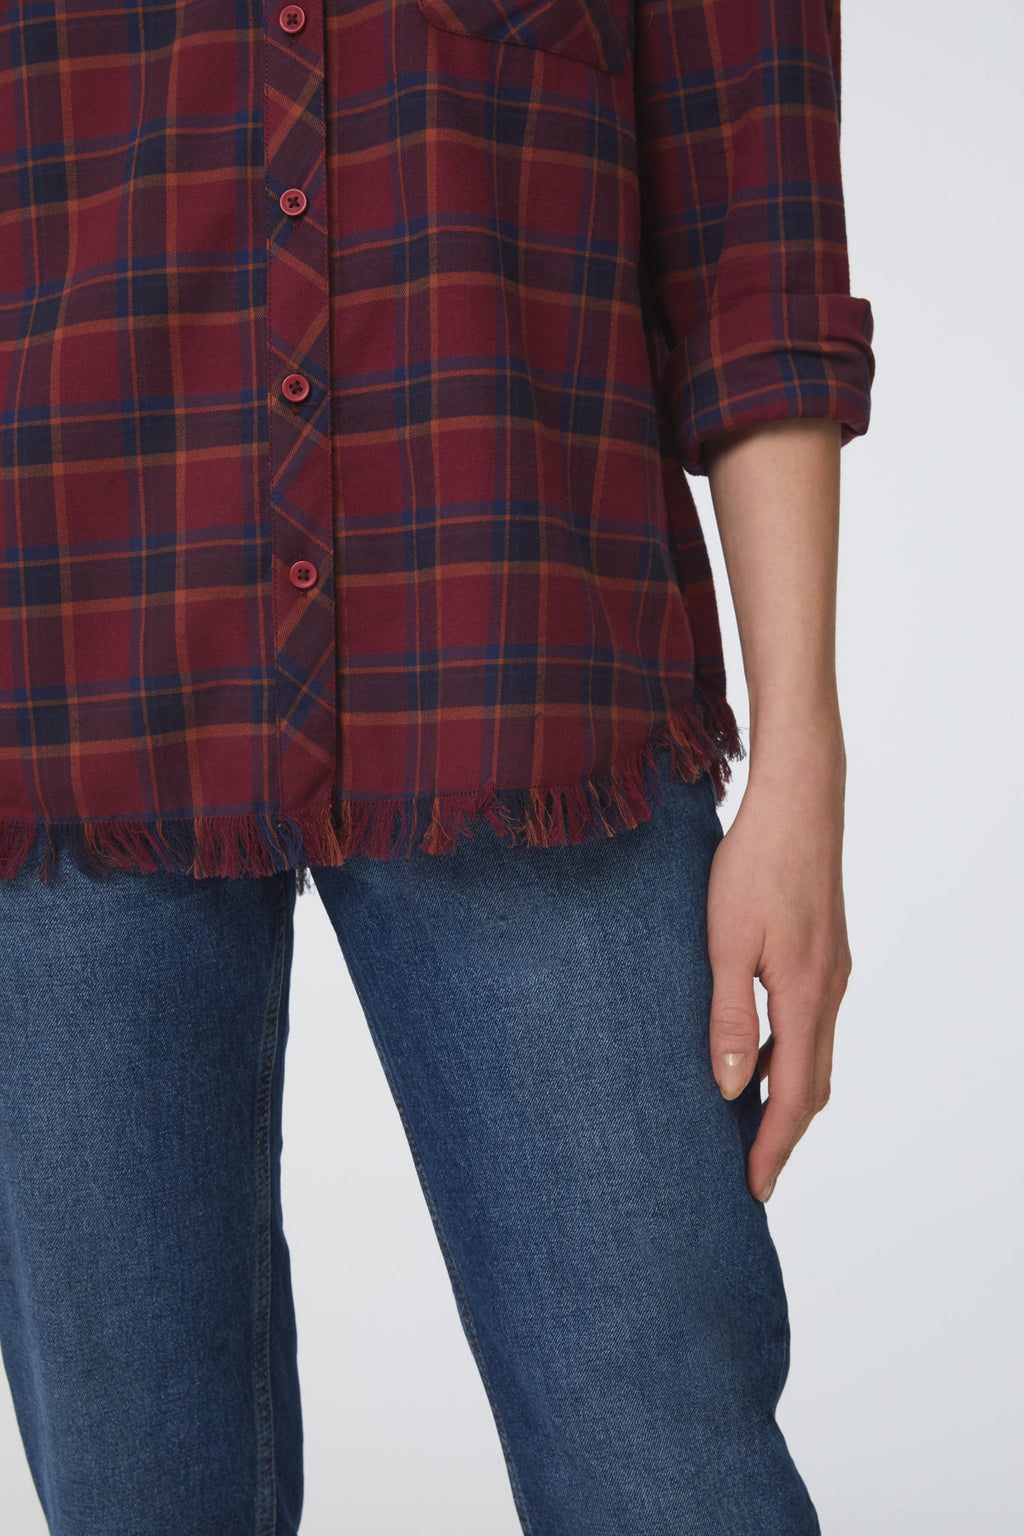 detail of frayed hem on red and blue plaid shirt